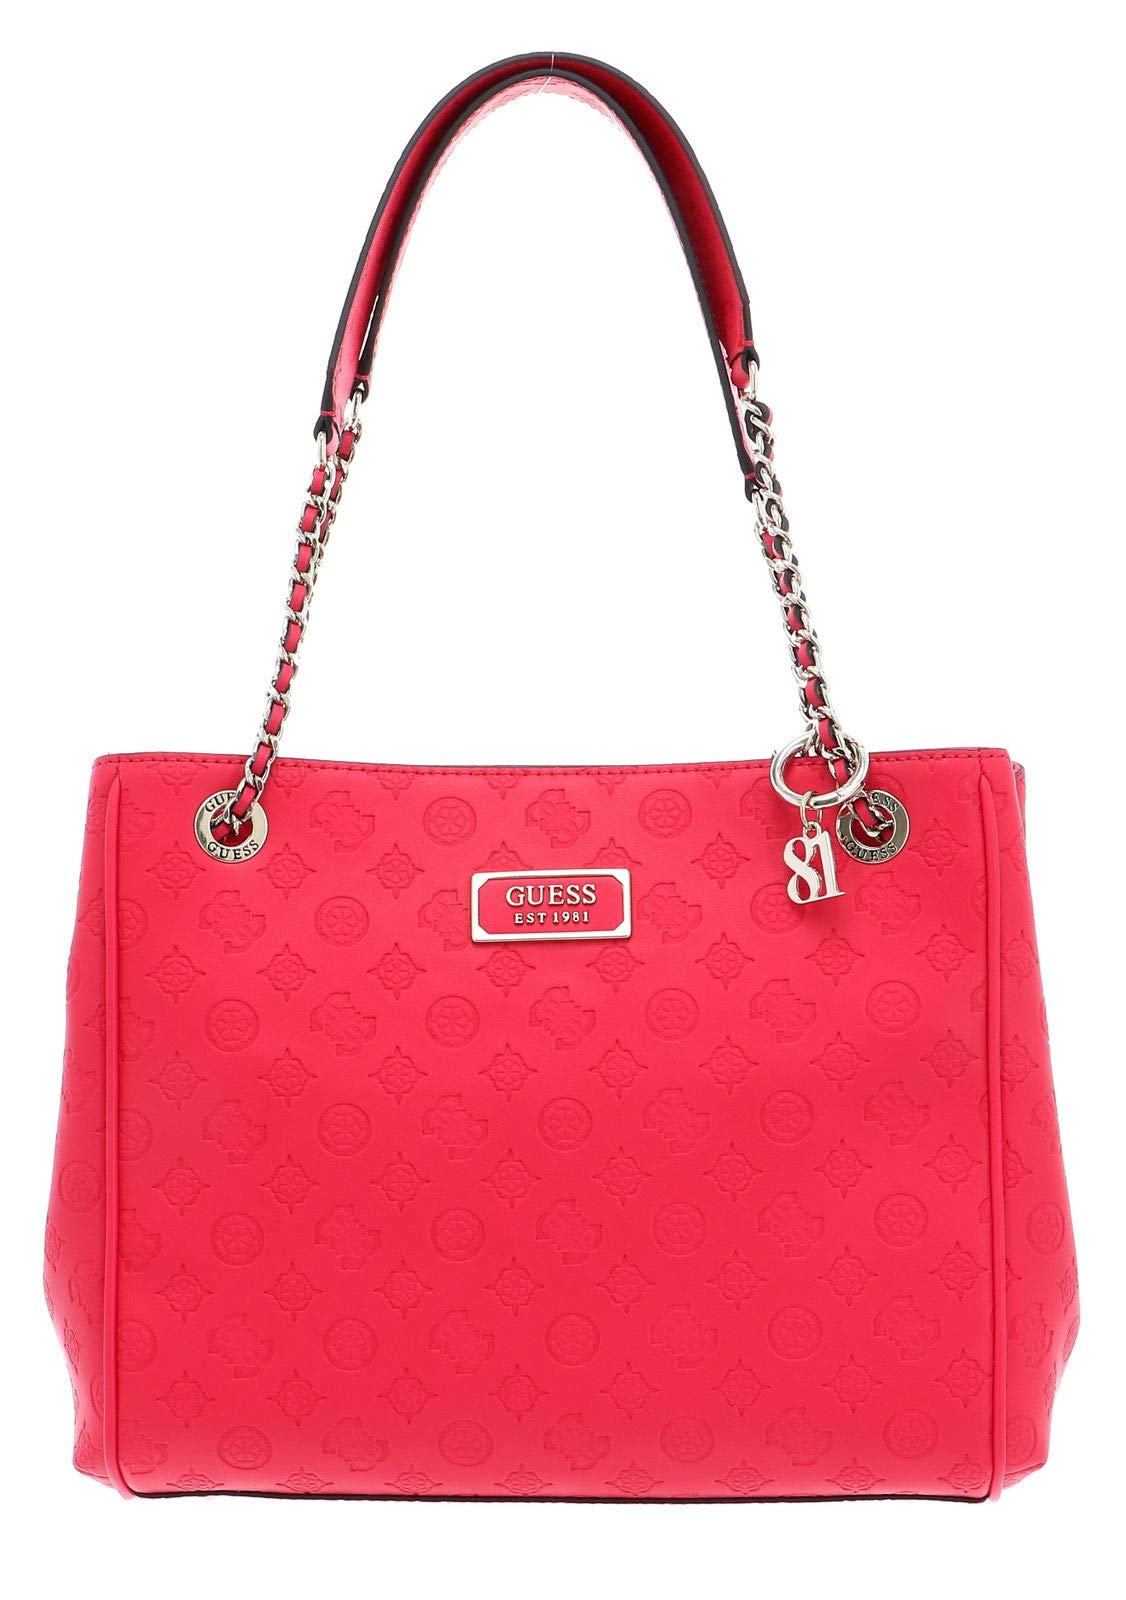 GUESS LOGO LOVE GIRLFRIEND CARRYALL